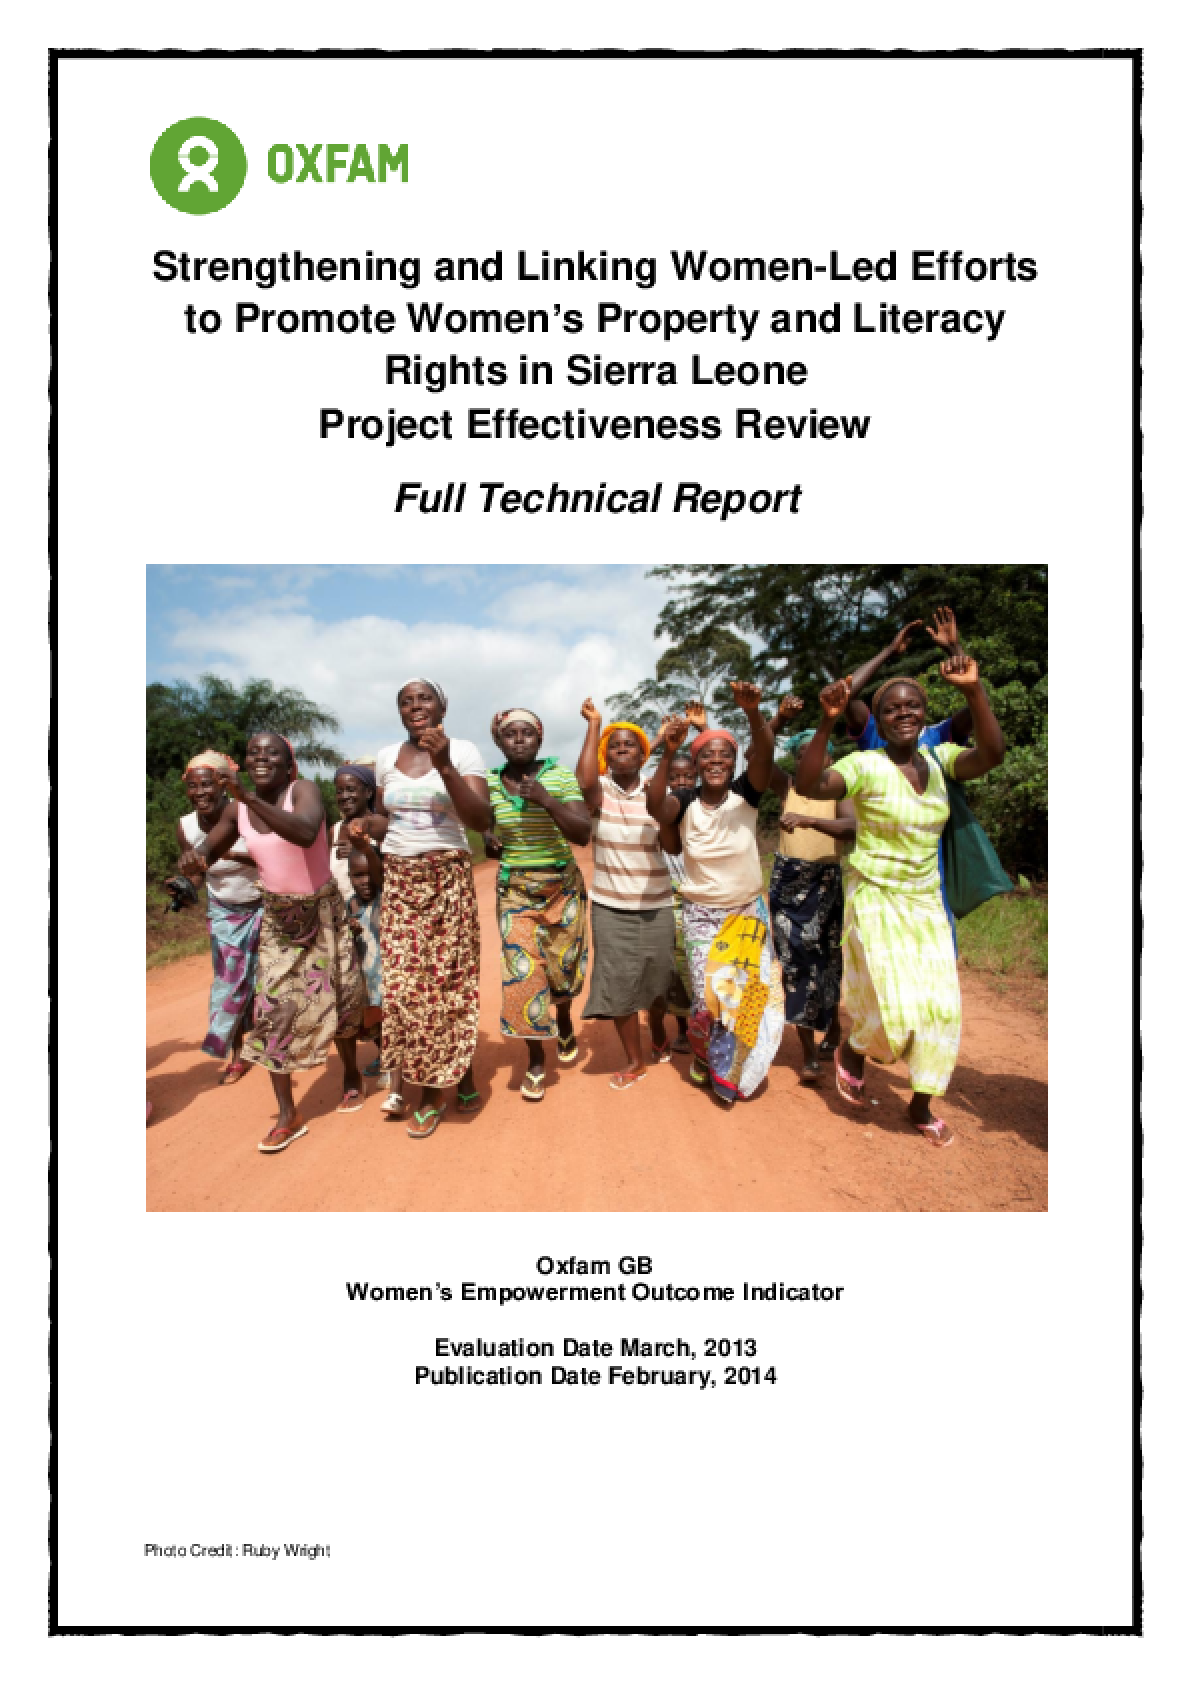 Effectiveness Review: Strengthening and Linking Women-Led Efforts to Promote Women's Property and Literacy Rights in Sierra Leone